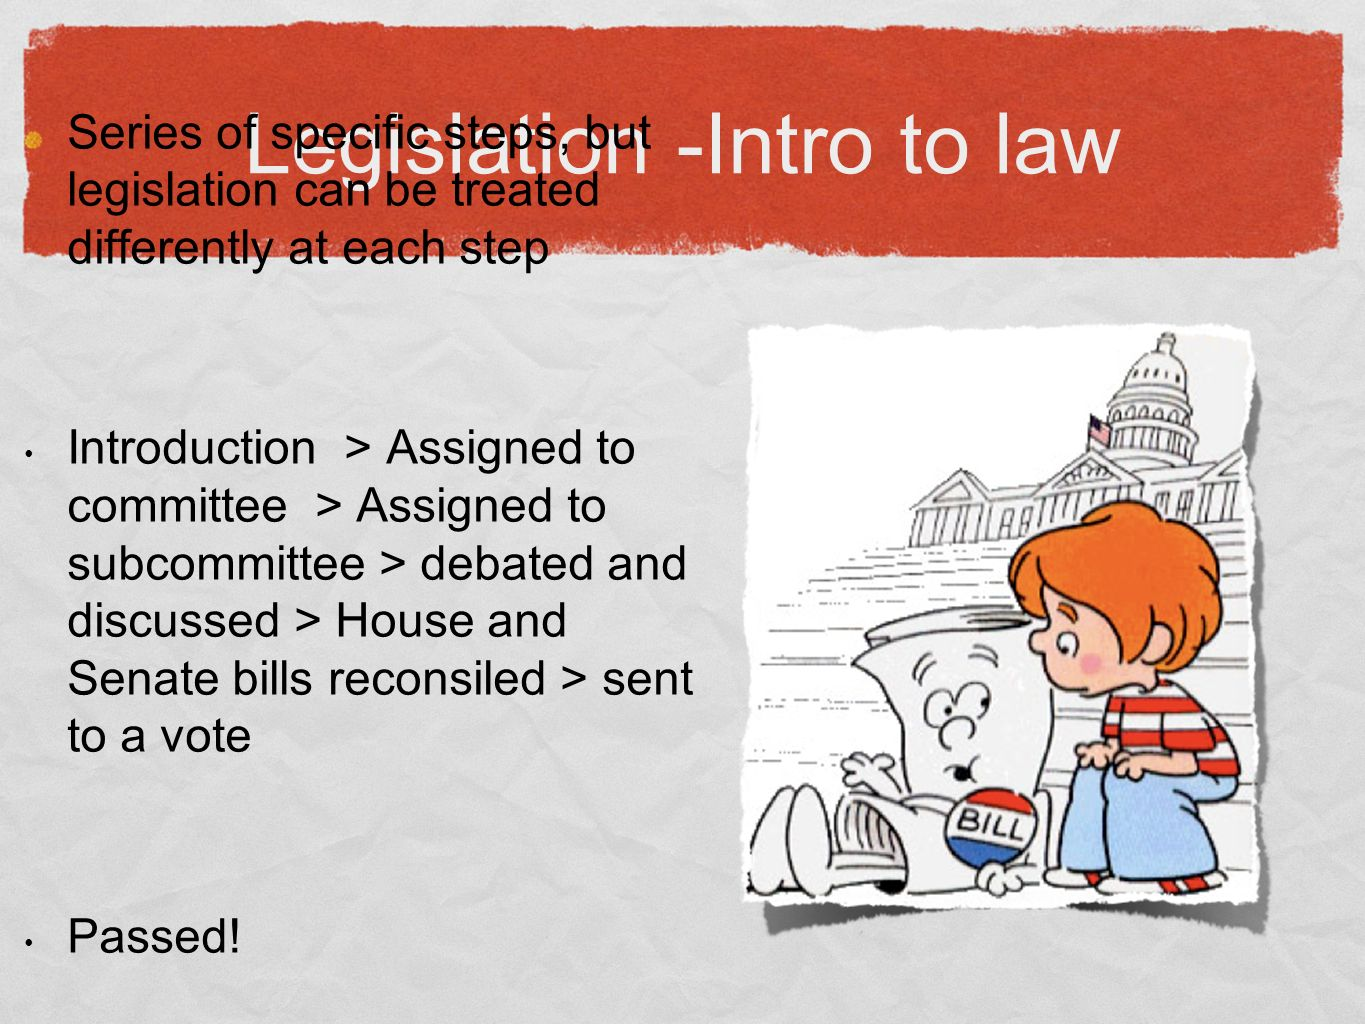 Legislation -Intro to law Series of specific steps, but legislation can be treated differently at each step Introduction > Assigned to committee > Assigned to subcommittee > debated and discussed > House and Senate bills reconsiled > sent to a vote Passed!